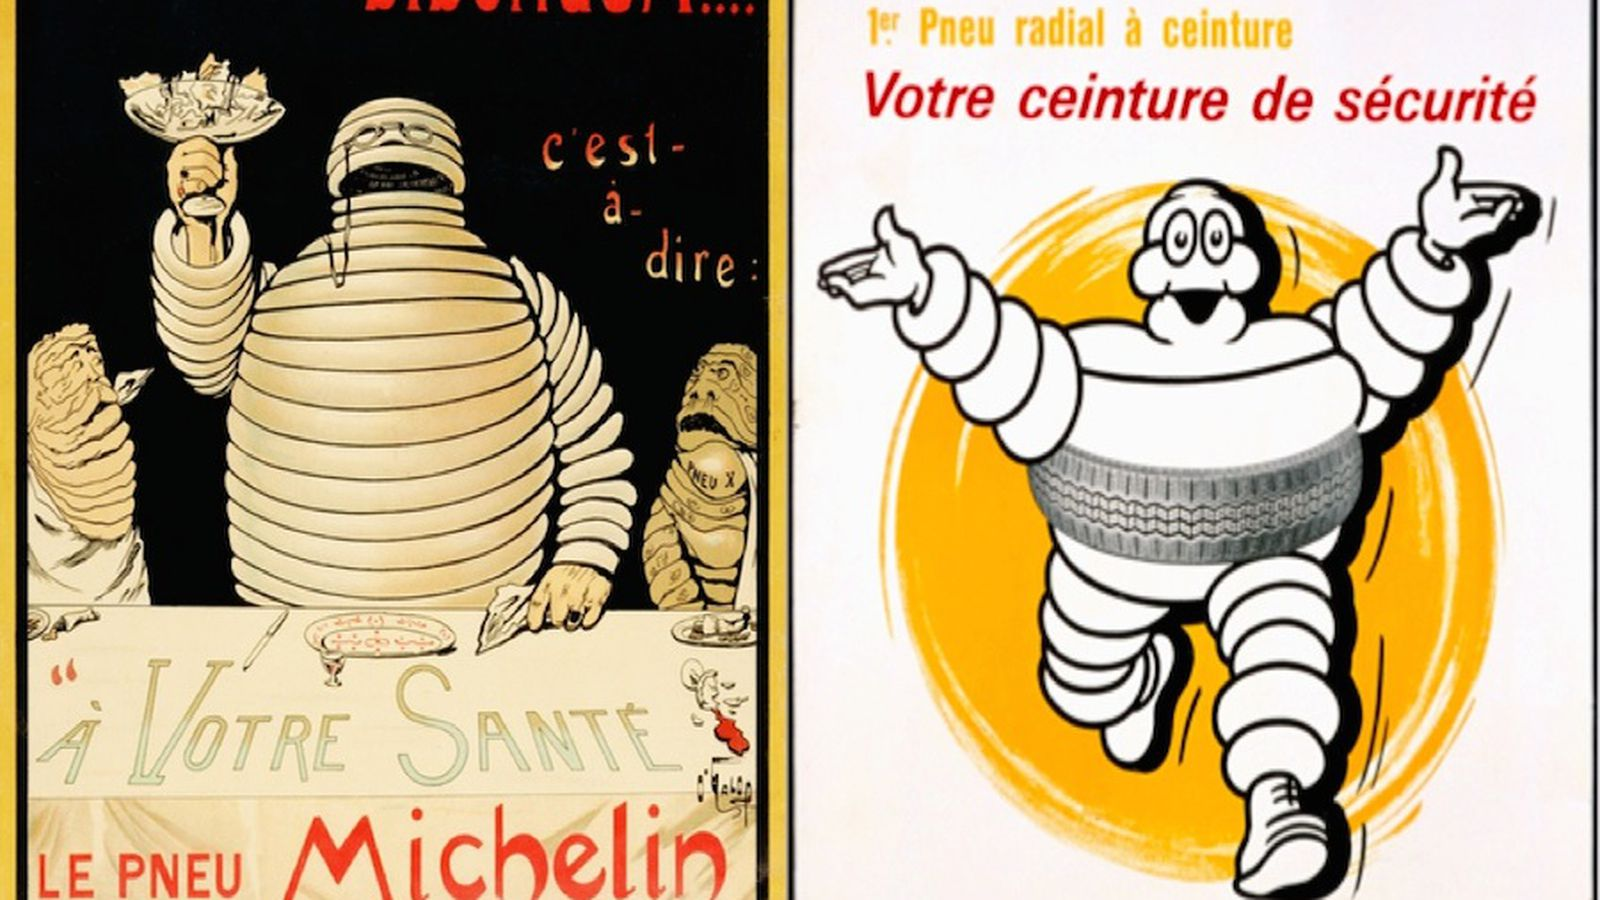 Michelin Man (gambar dari: https://www.eater.com/2014/10/3/6905125/seven-things-you-didnt-know-about-the-michelin-man)